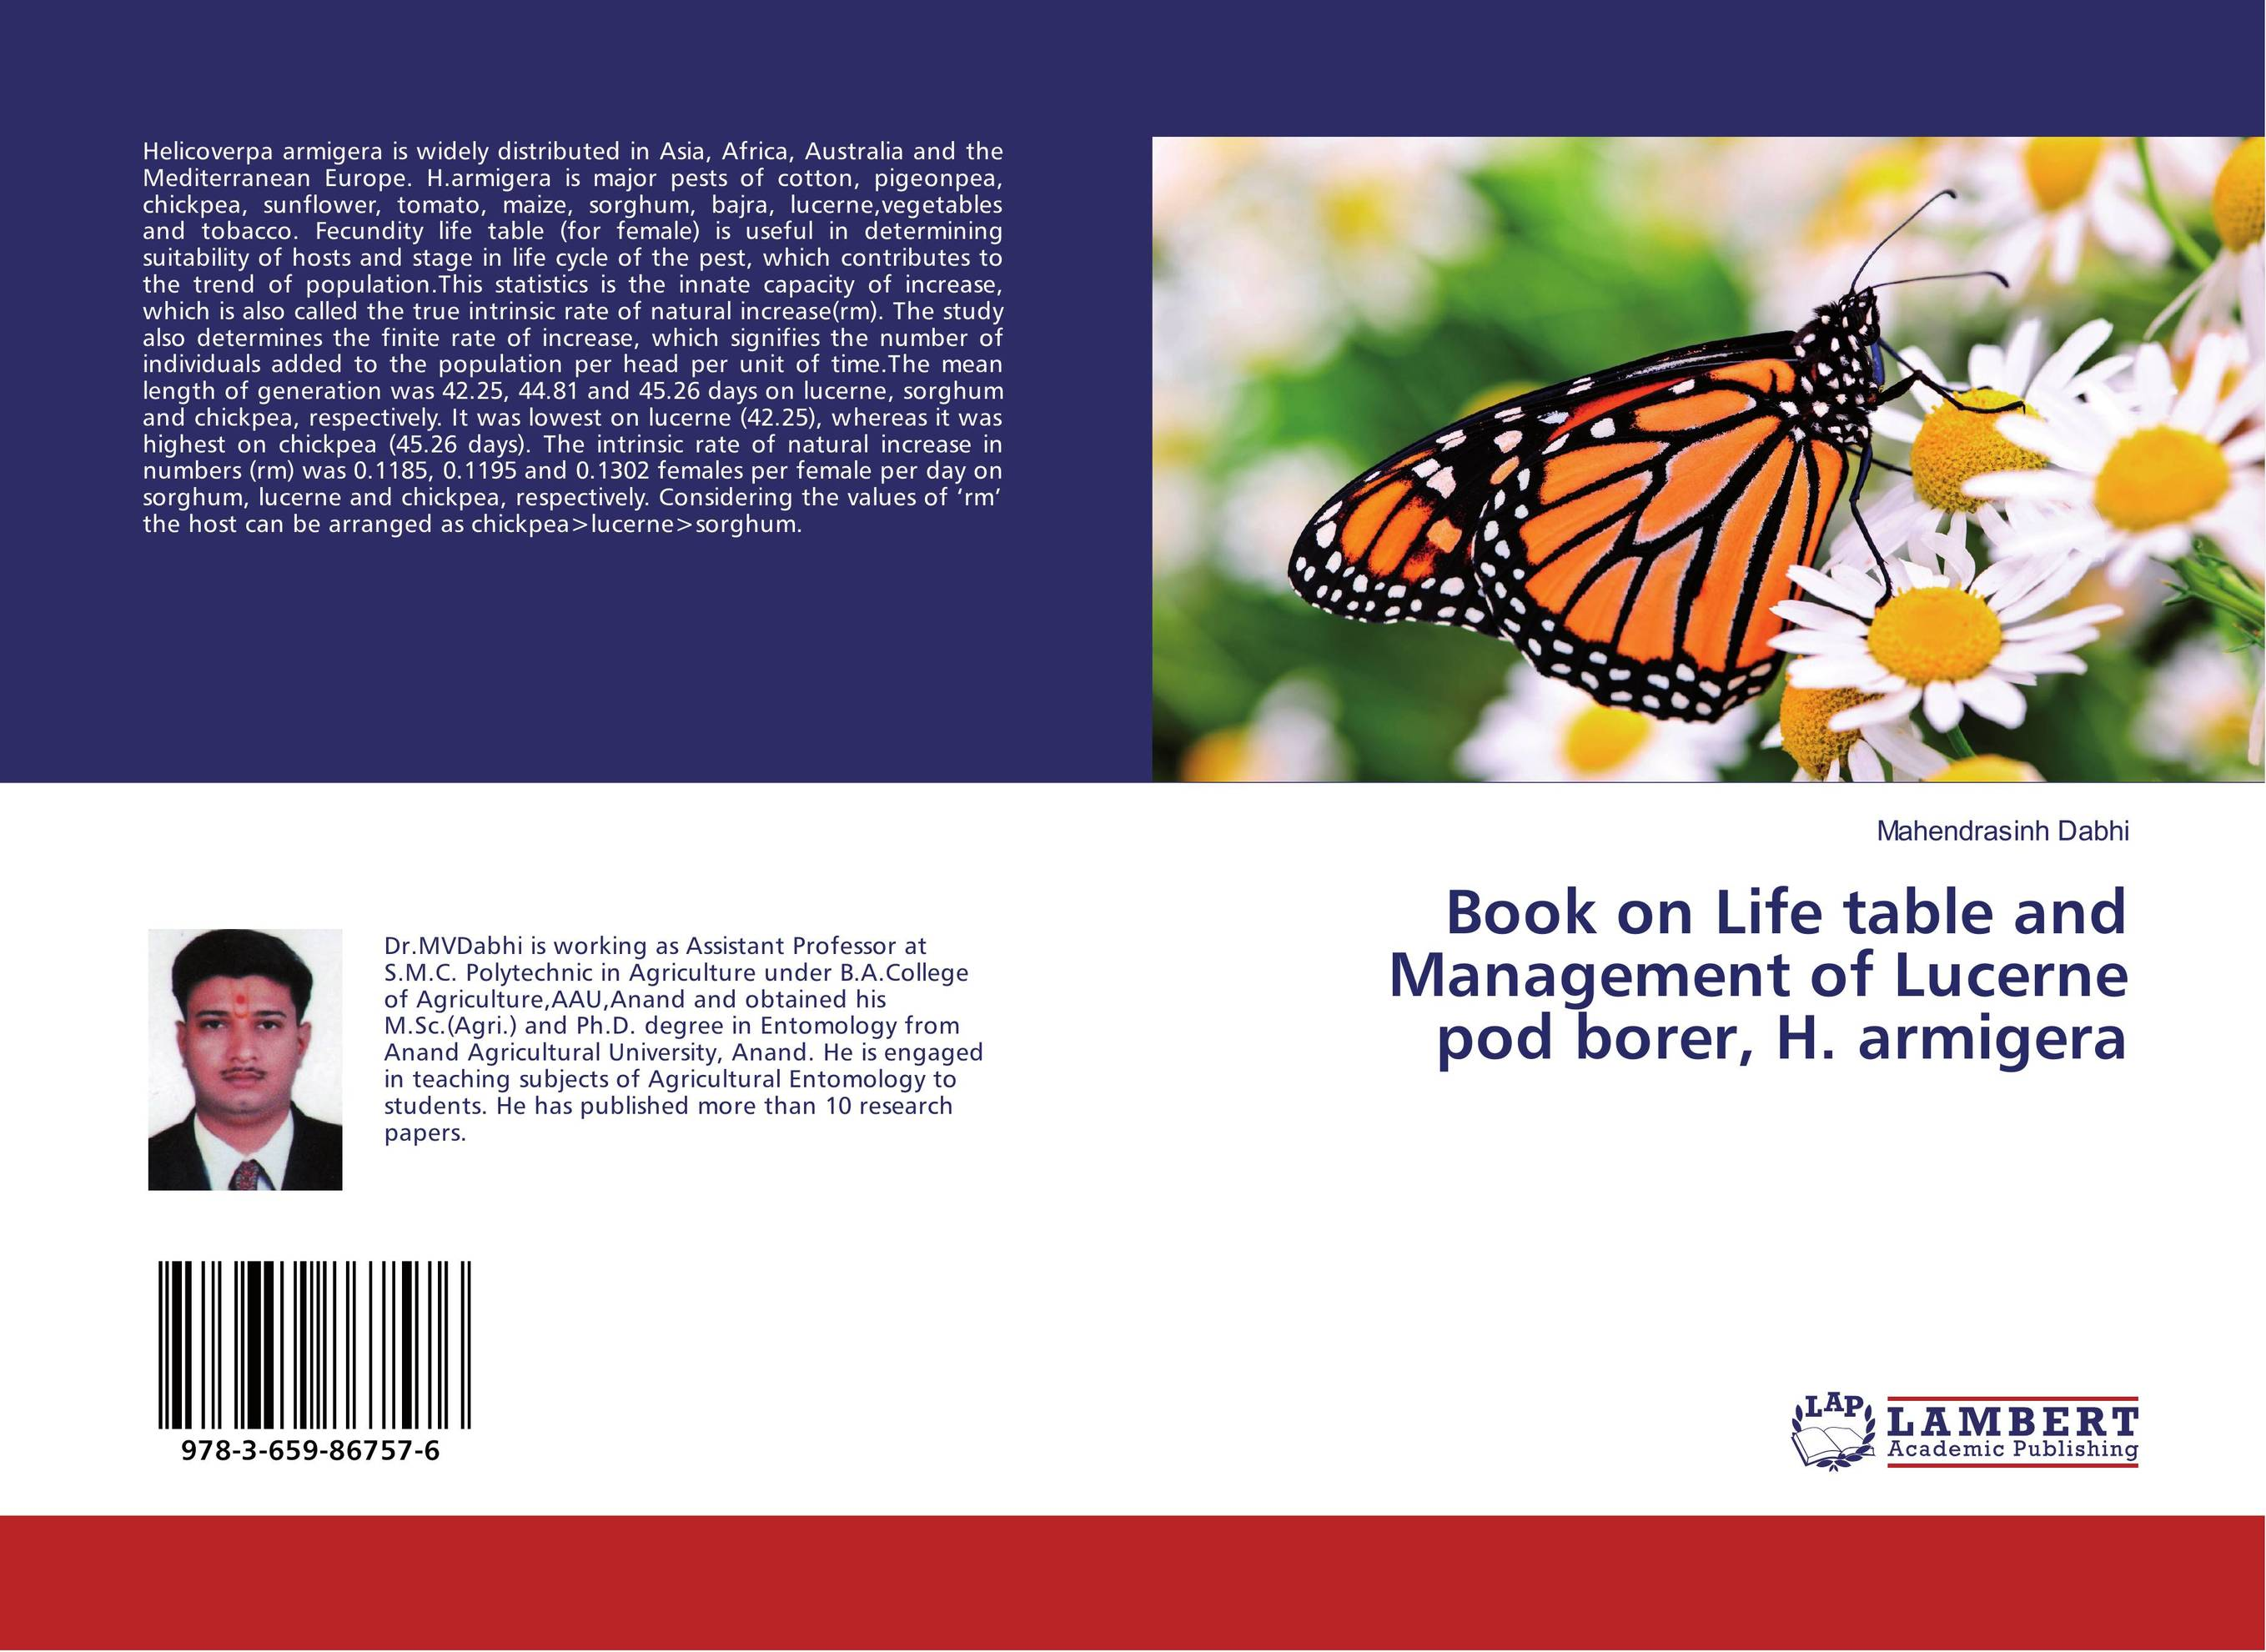 Book on Life table and Management of Lucerne pod borer, H. armigera